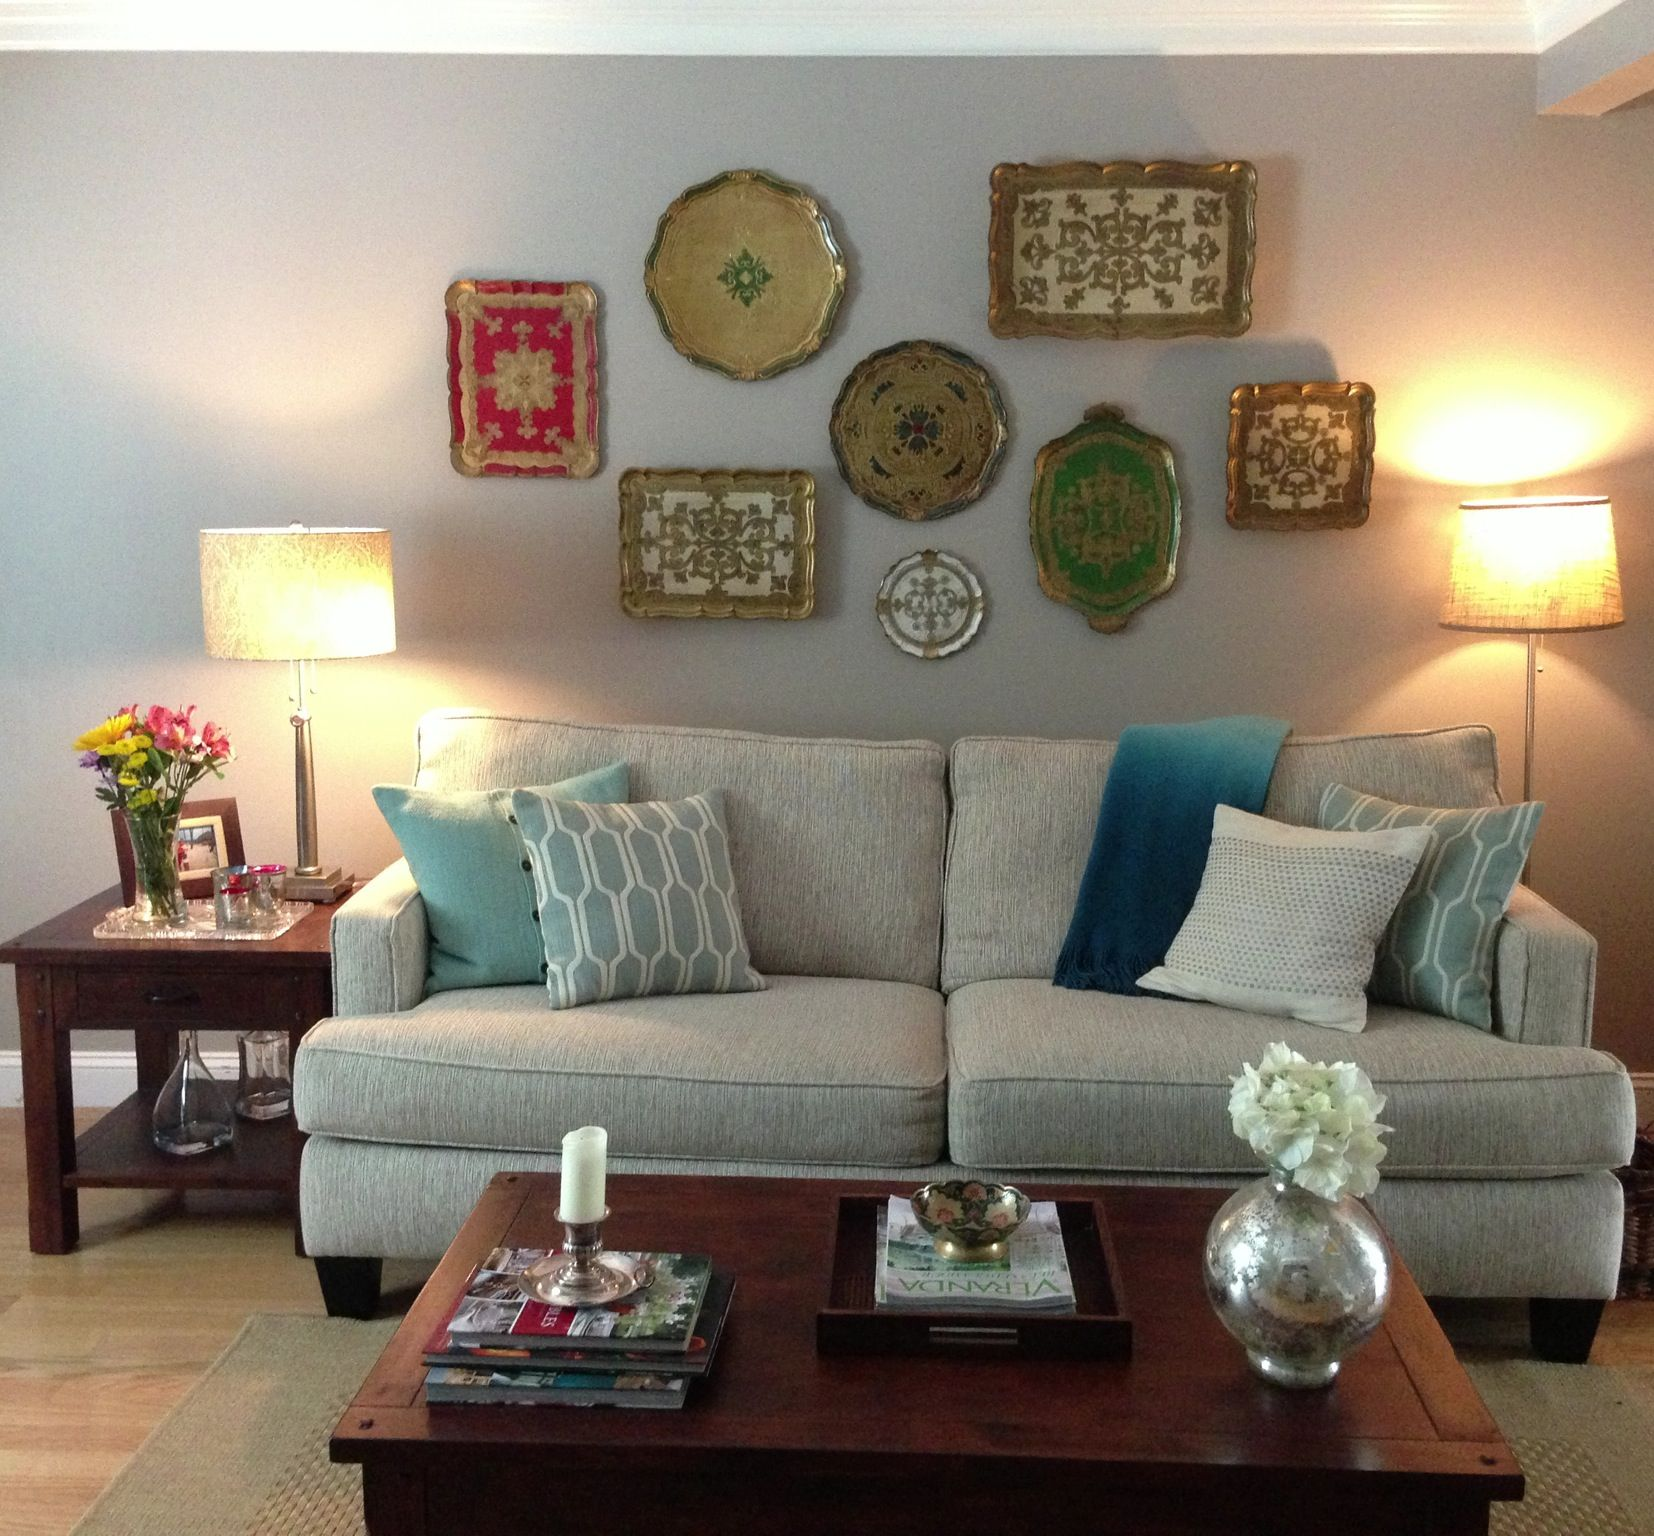 Mixing Modern Traditional And Antique Design Elements Can Make For A